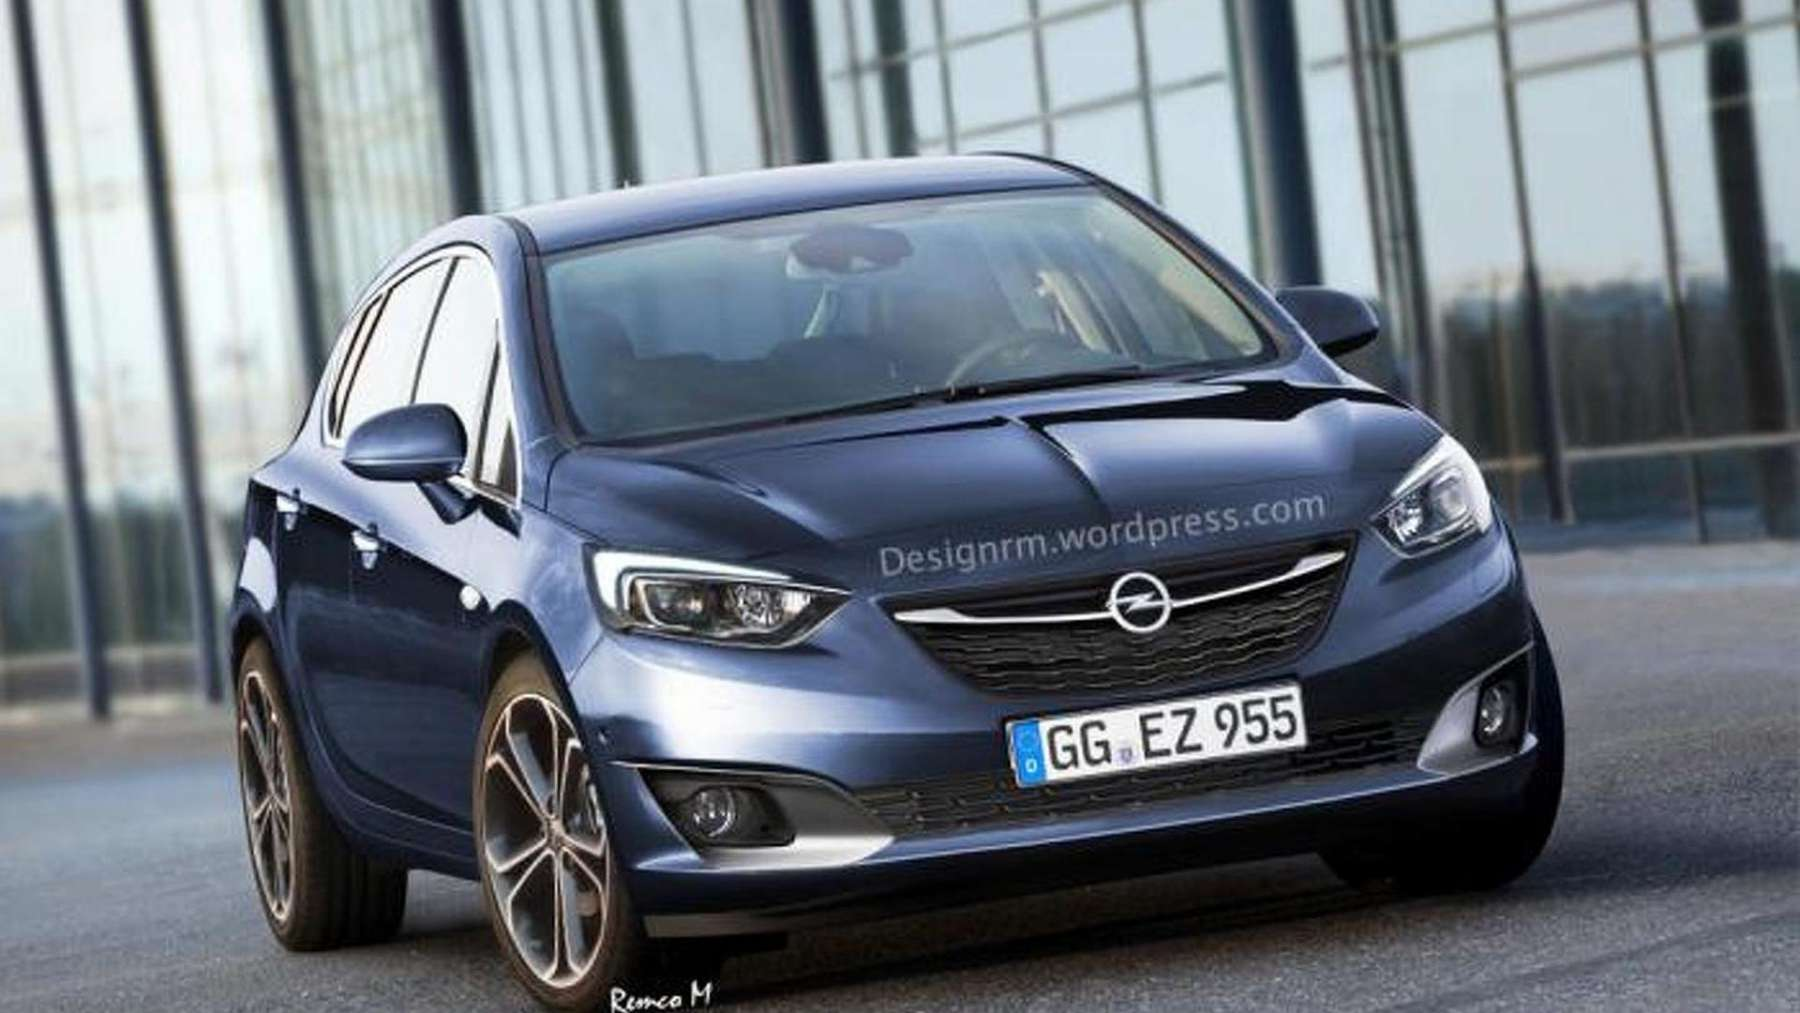 Opel Astra wallpapers, specs and news